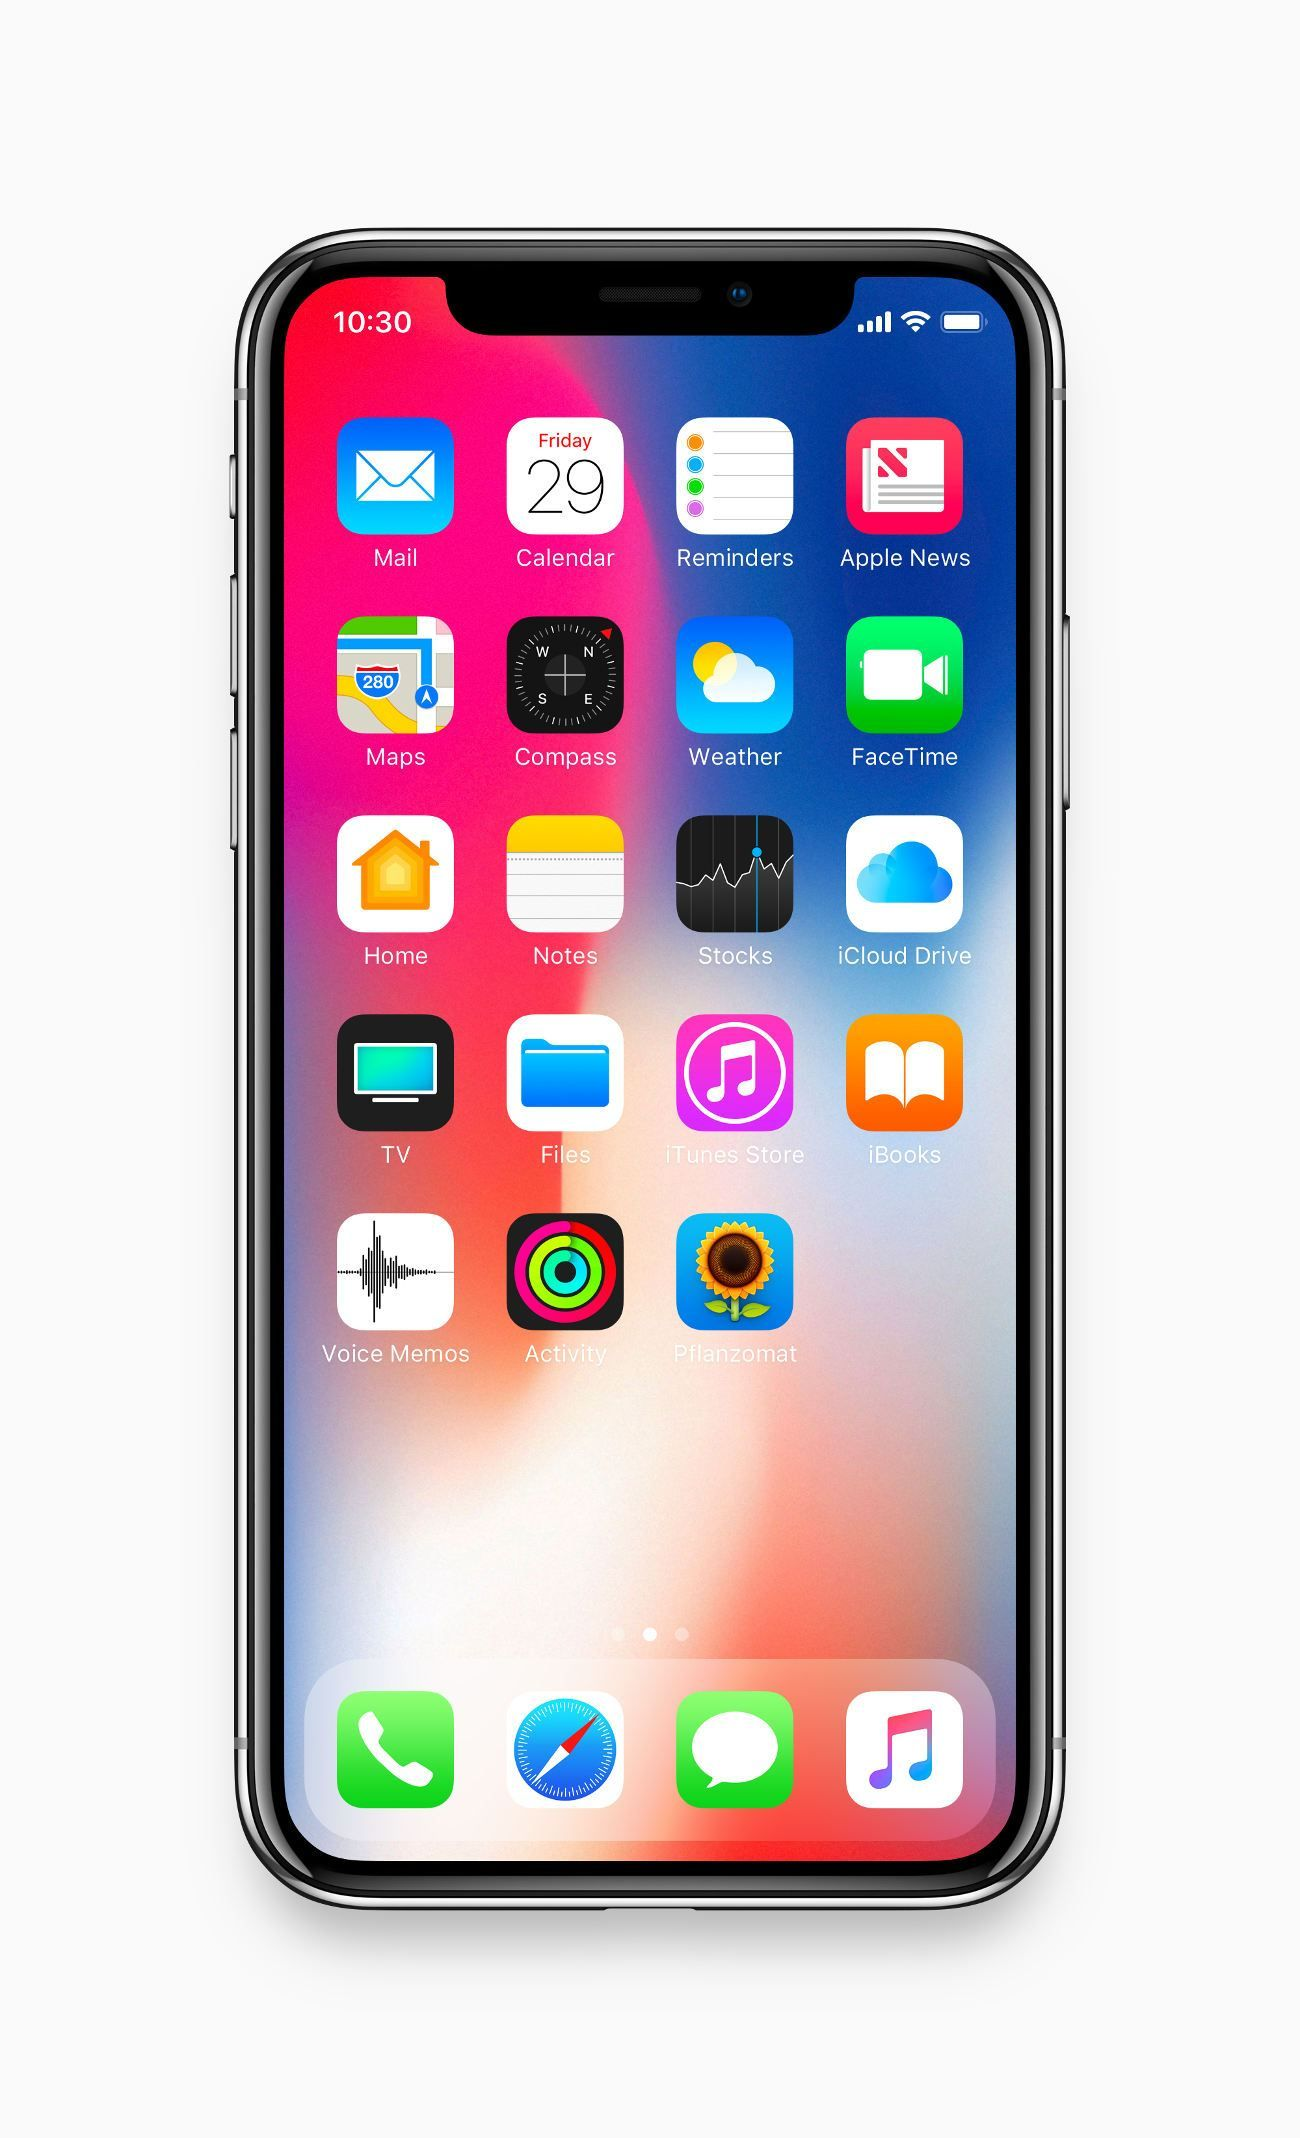 Download Iphone X Mockup Fit 2436 X 1125 Pixel Resolution Omahpsd Tempered Glass Screen Protector Glass Screen Protector Glass Screen